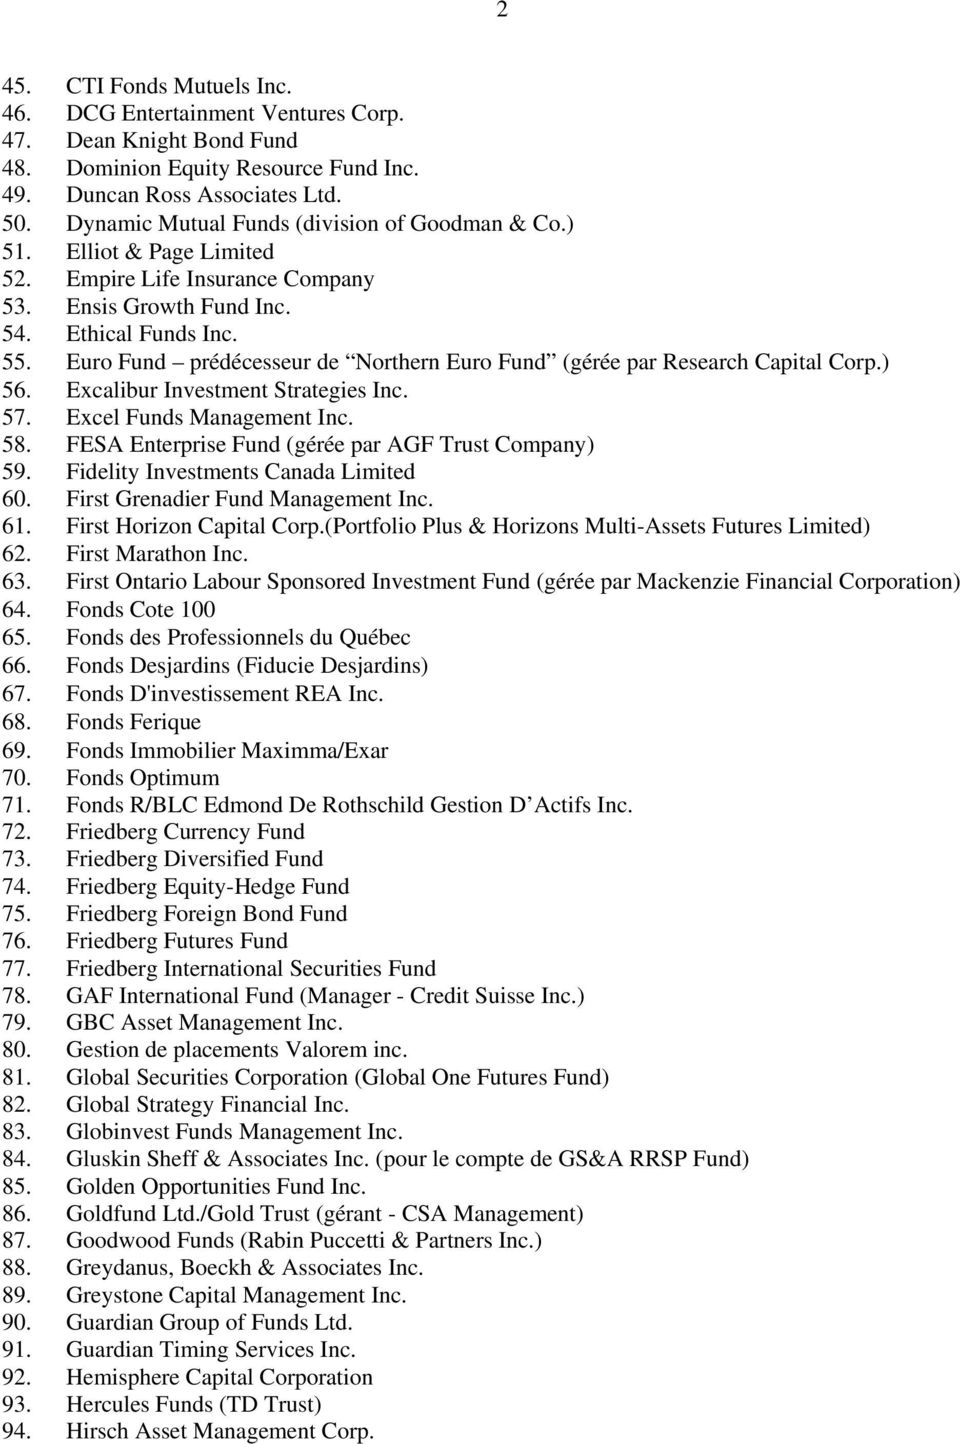 Euro Fund prédécesseur de Northern Euro Fund (gérée par Research Capital Corp.) 56. Excalibur Investment Strategies Inc. 57. Excel Funds Management Inc. 58.